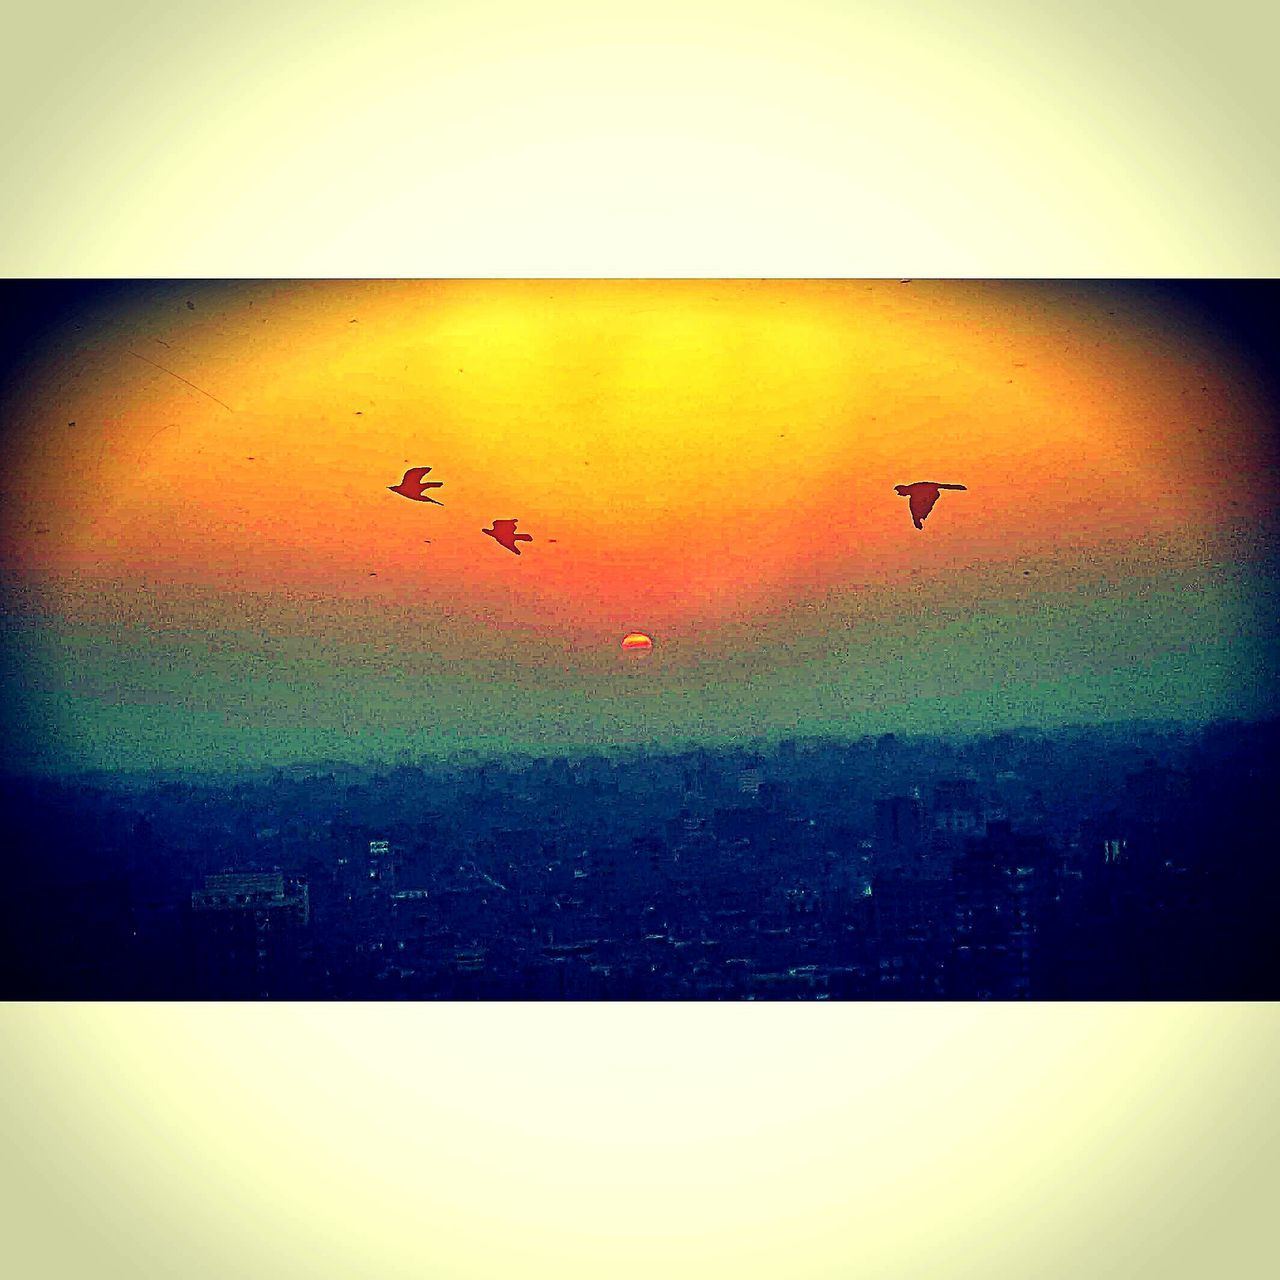 Flying No People Nature Beauty In Nature Sky Sunset Sunbird Photoshoot Editorialphotography Edit Mobile_photographer